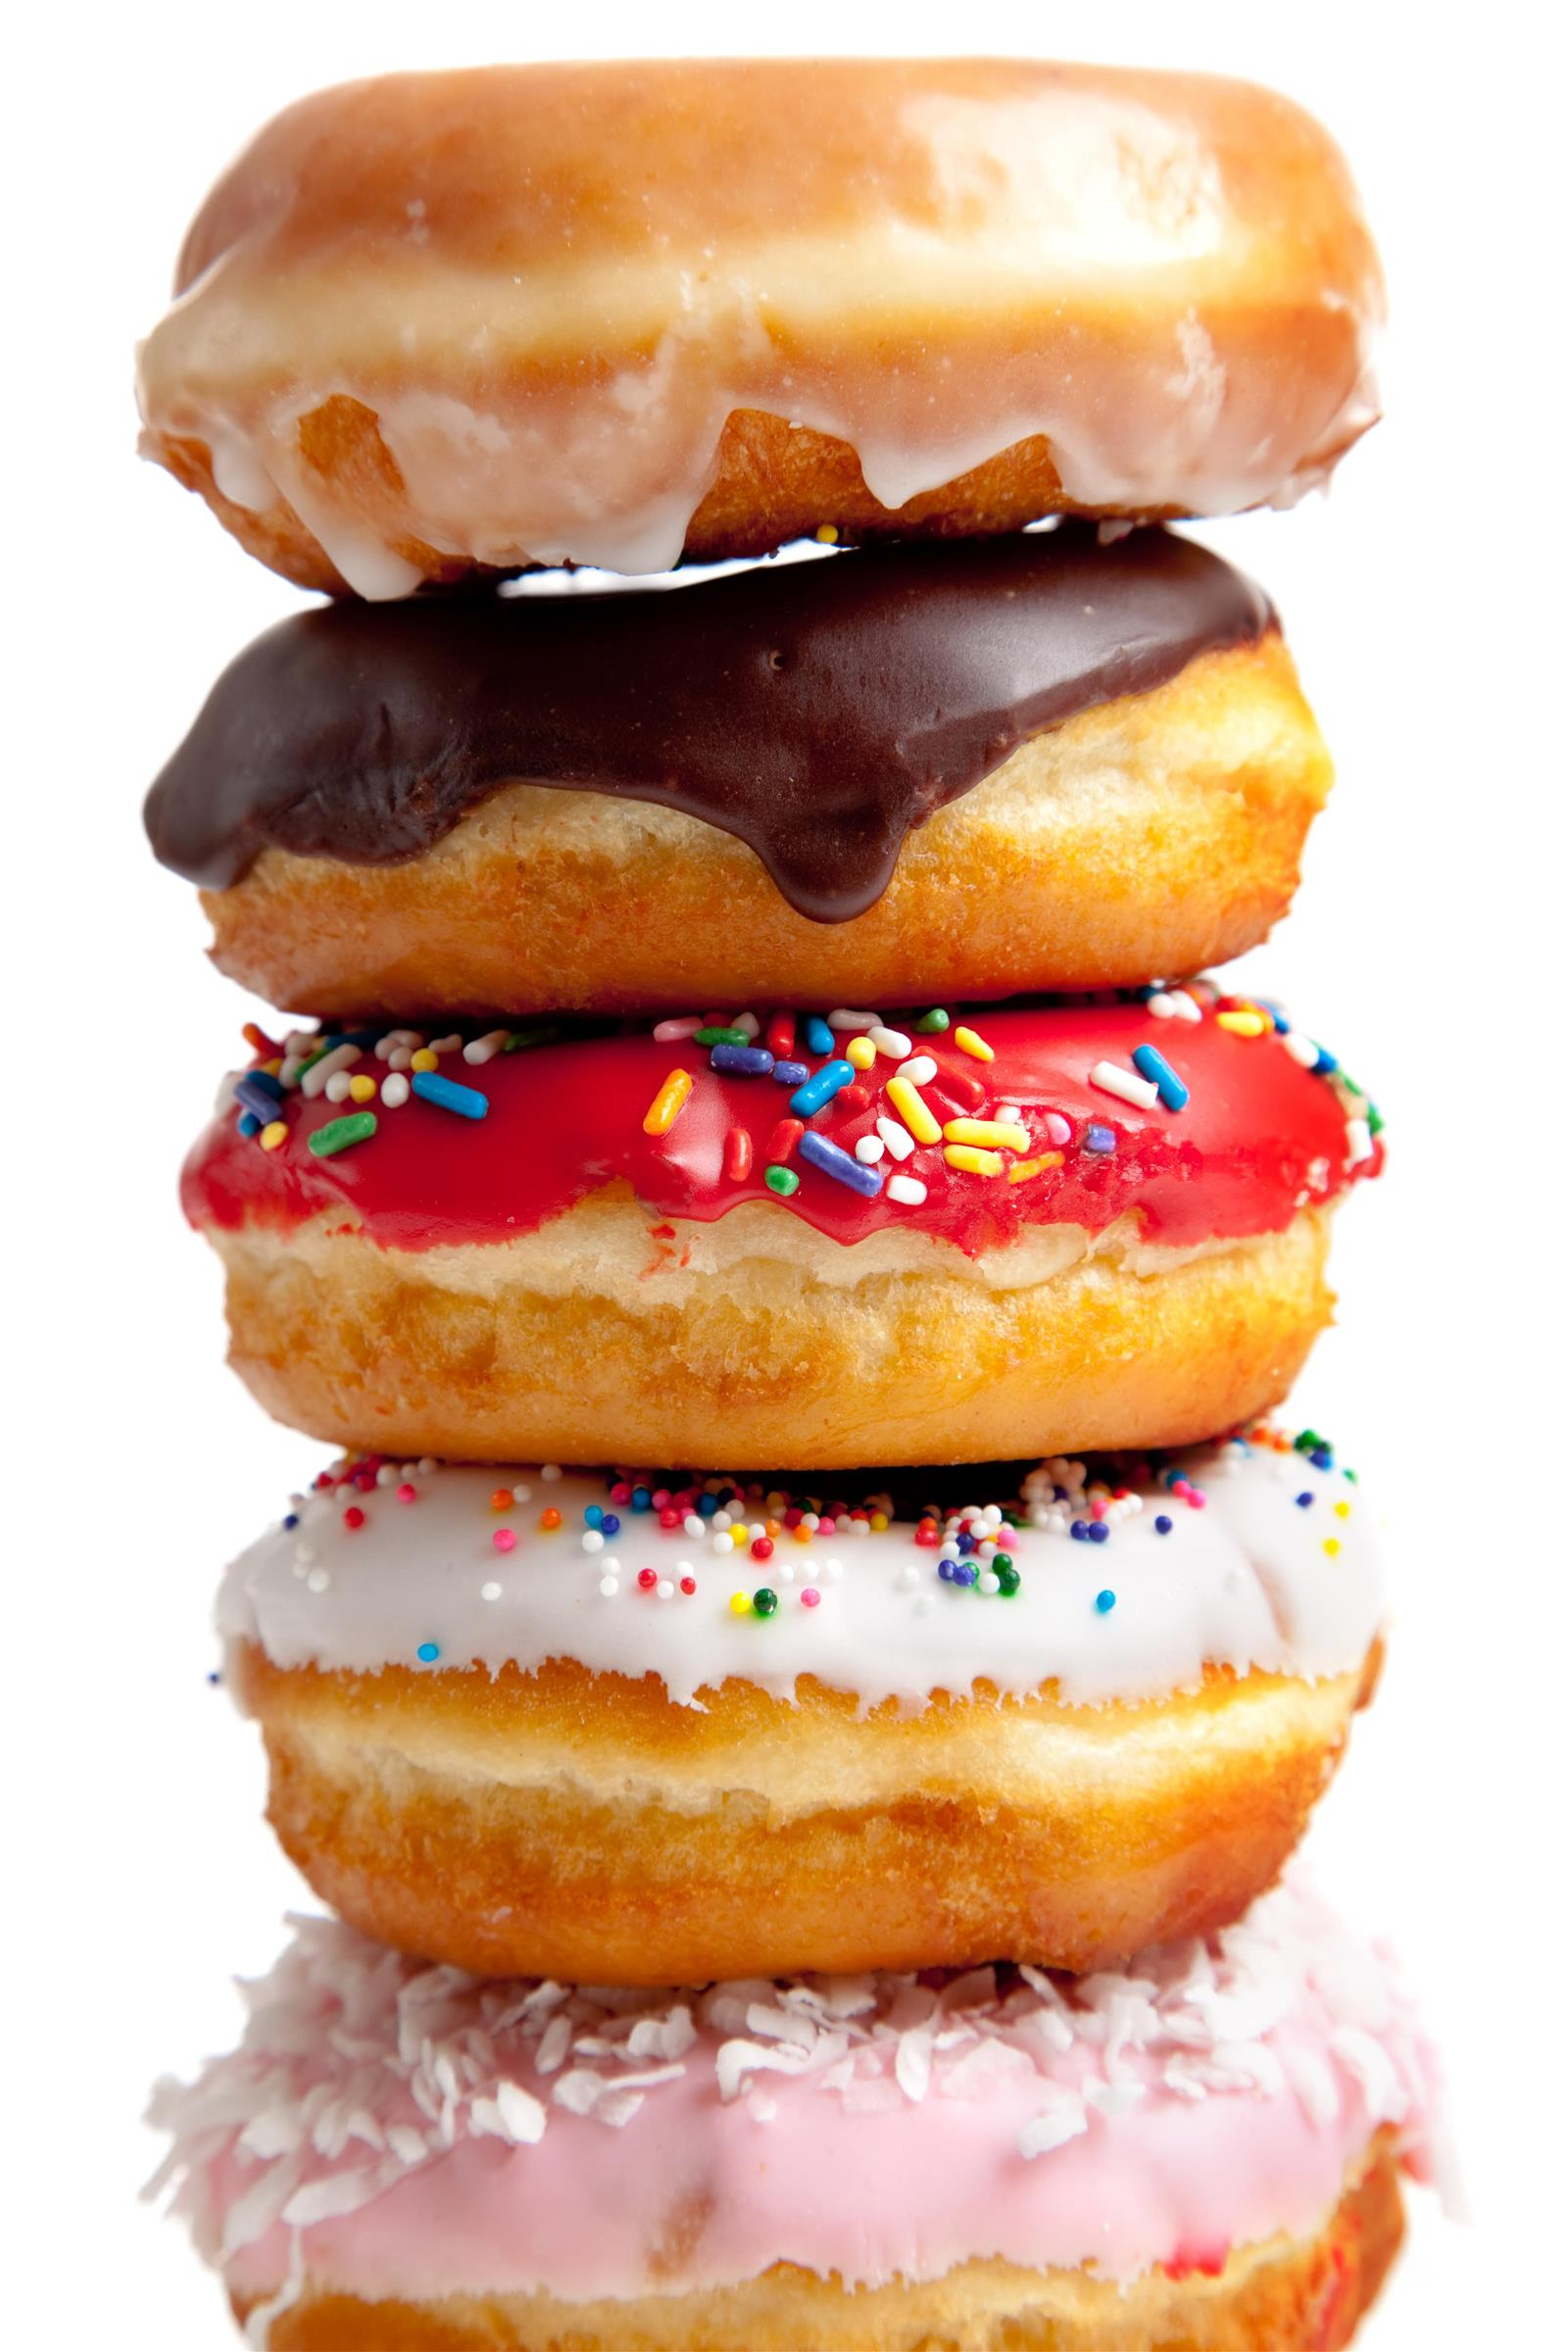 Assorted donuts stacked